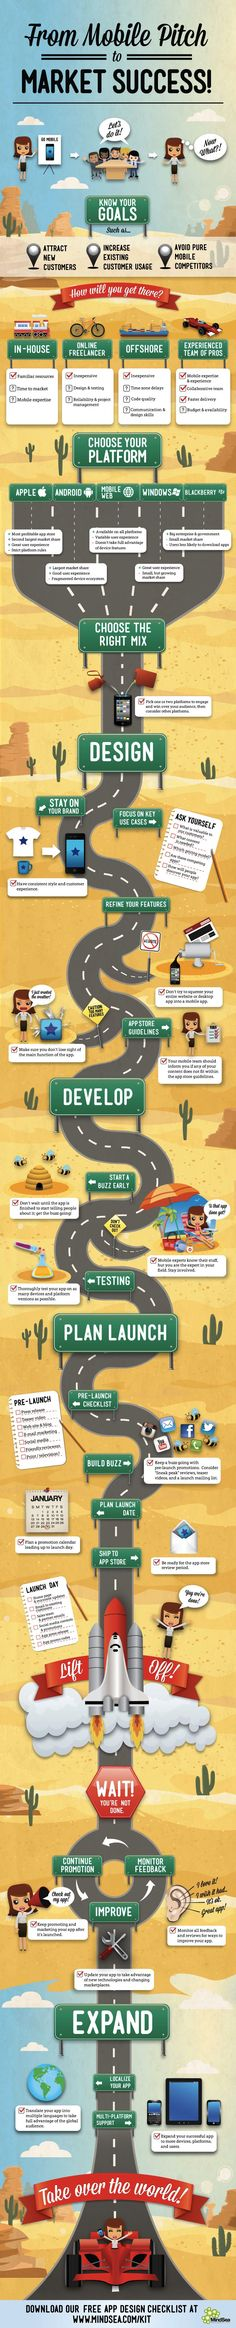 Increase your odds of building a great app by following this design roadmap